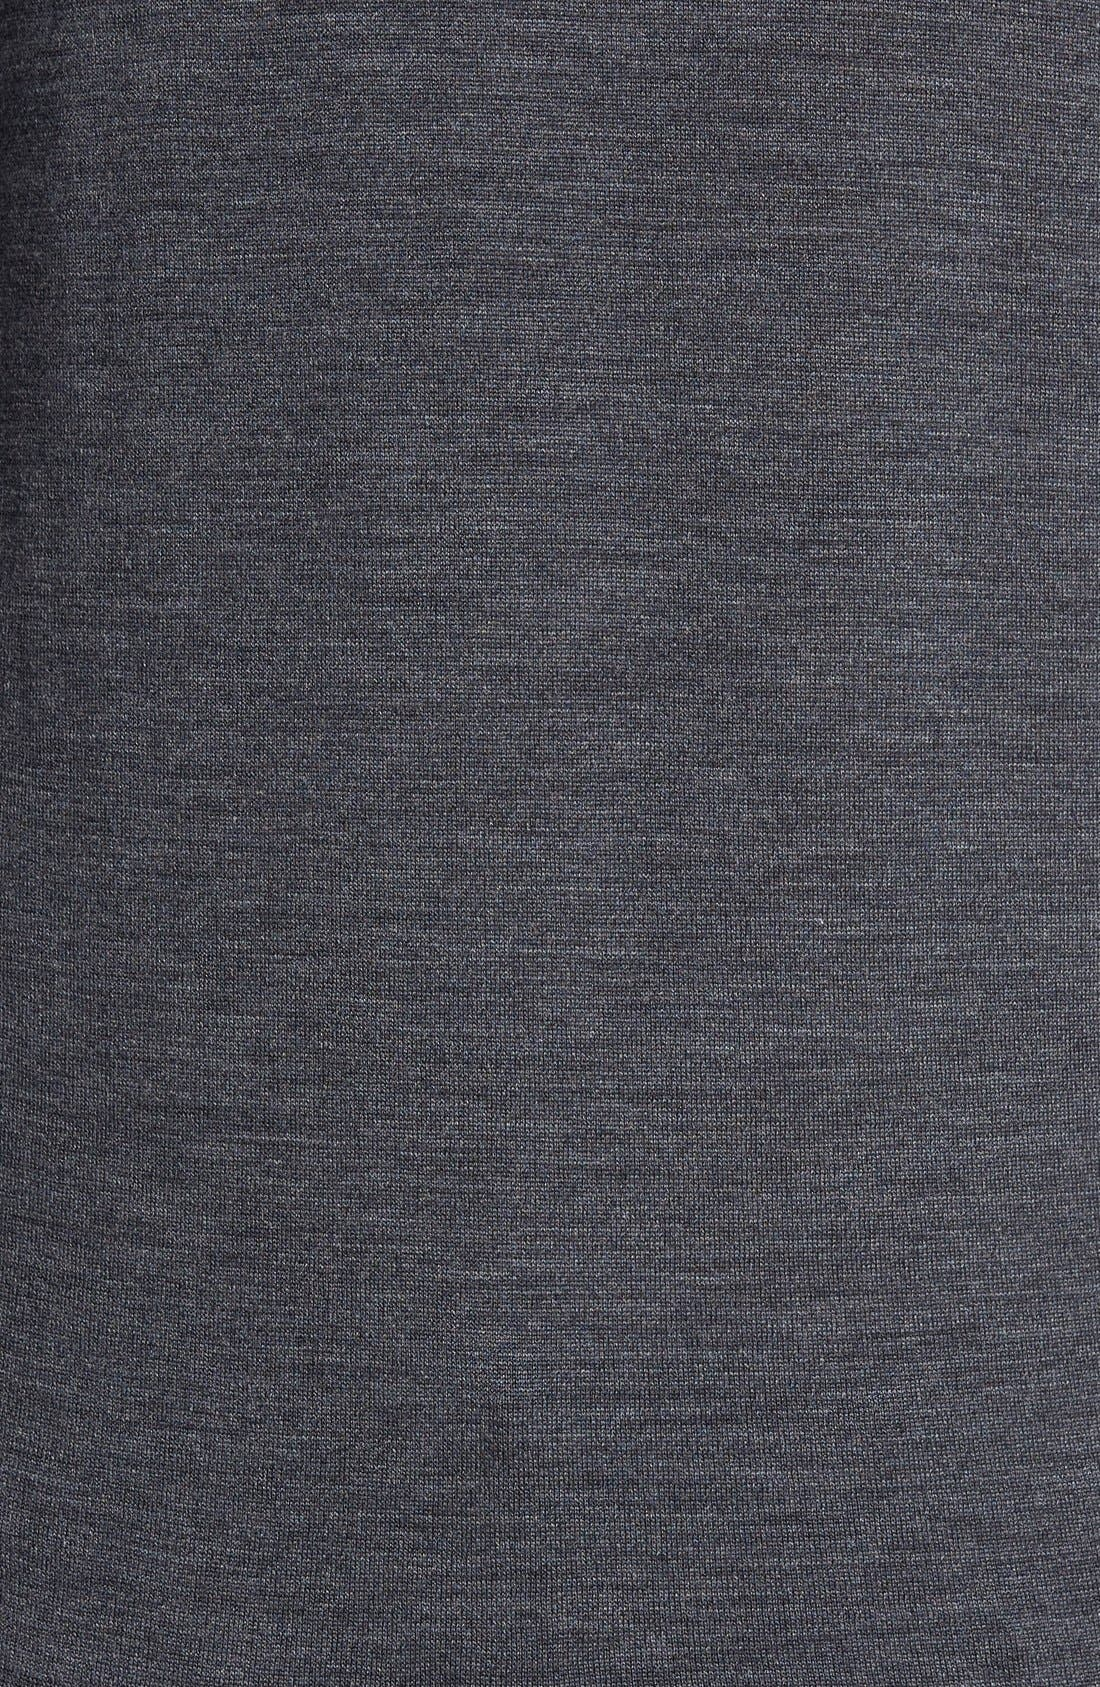 'Richards' Easy Fit Turtleneck Wool Sweater,                             Alternate thumbnail 7, color,                             Charcoal